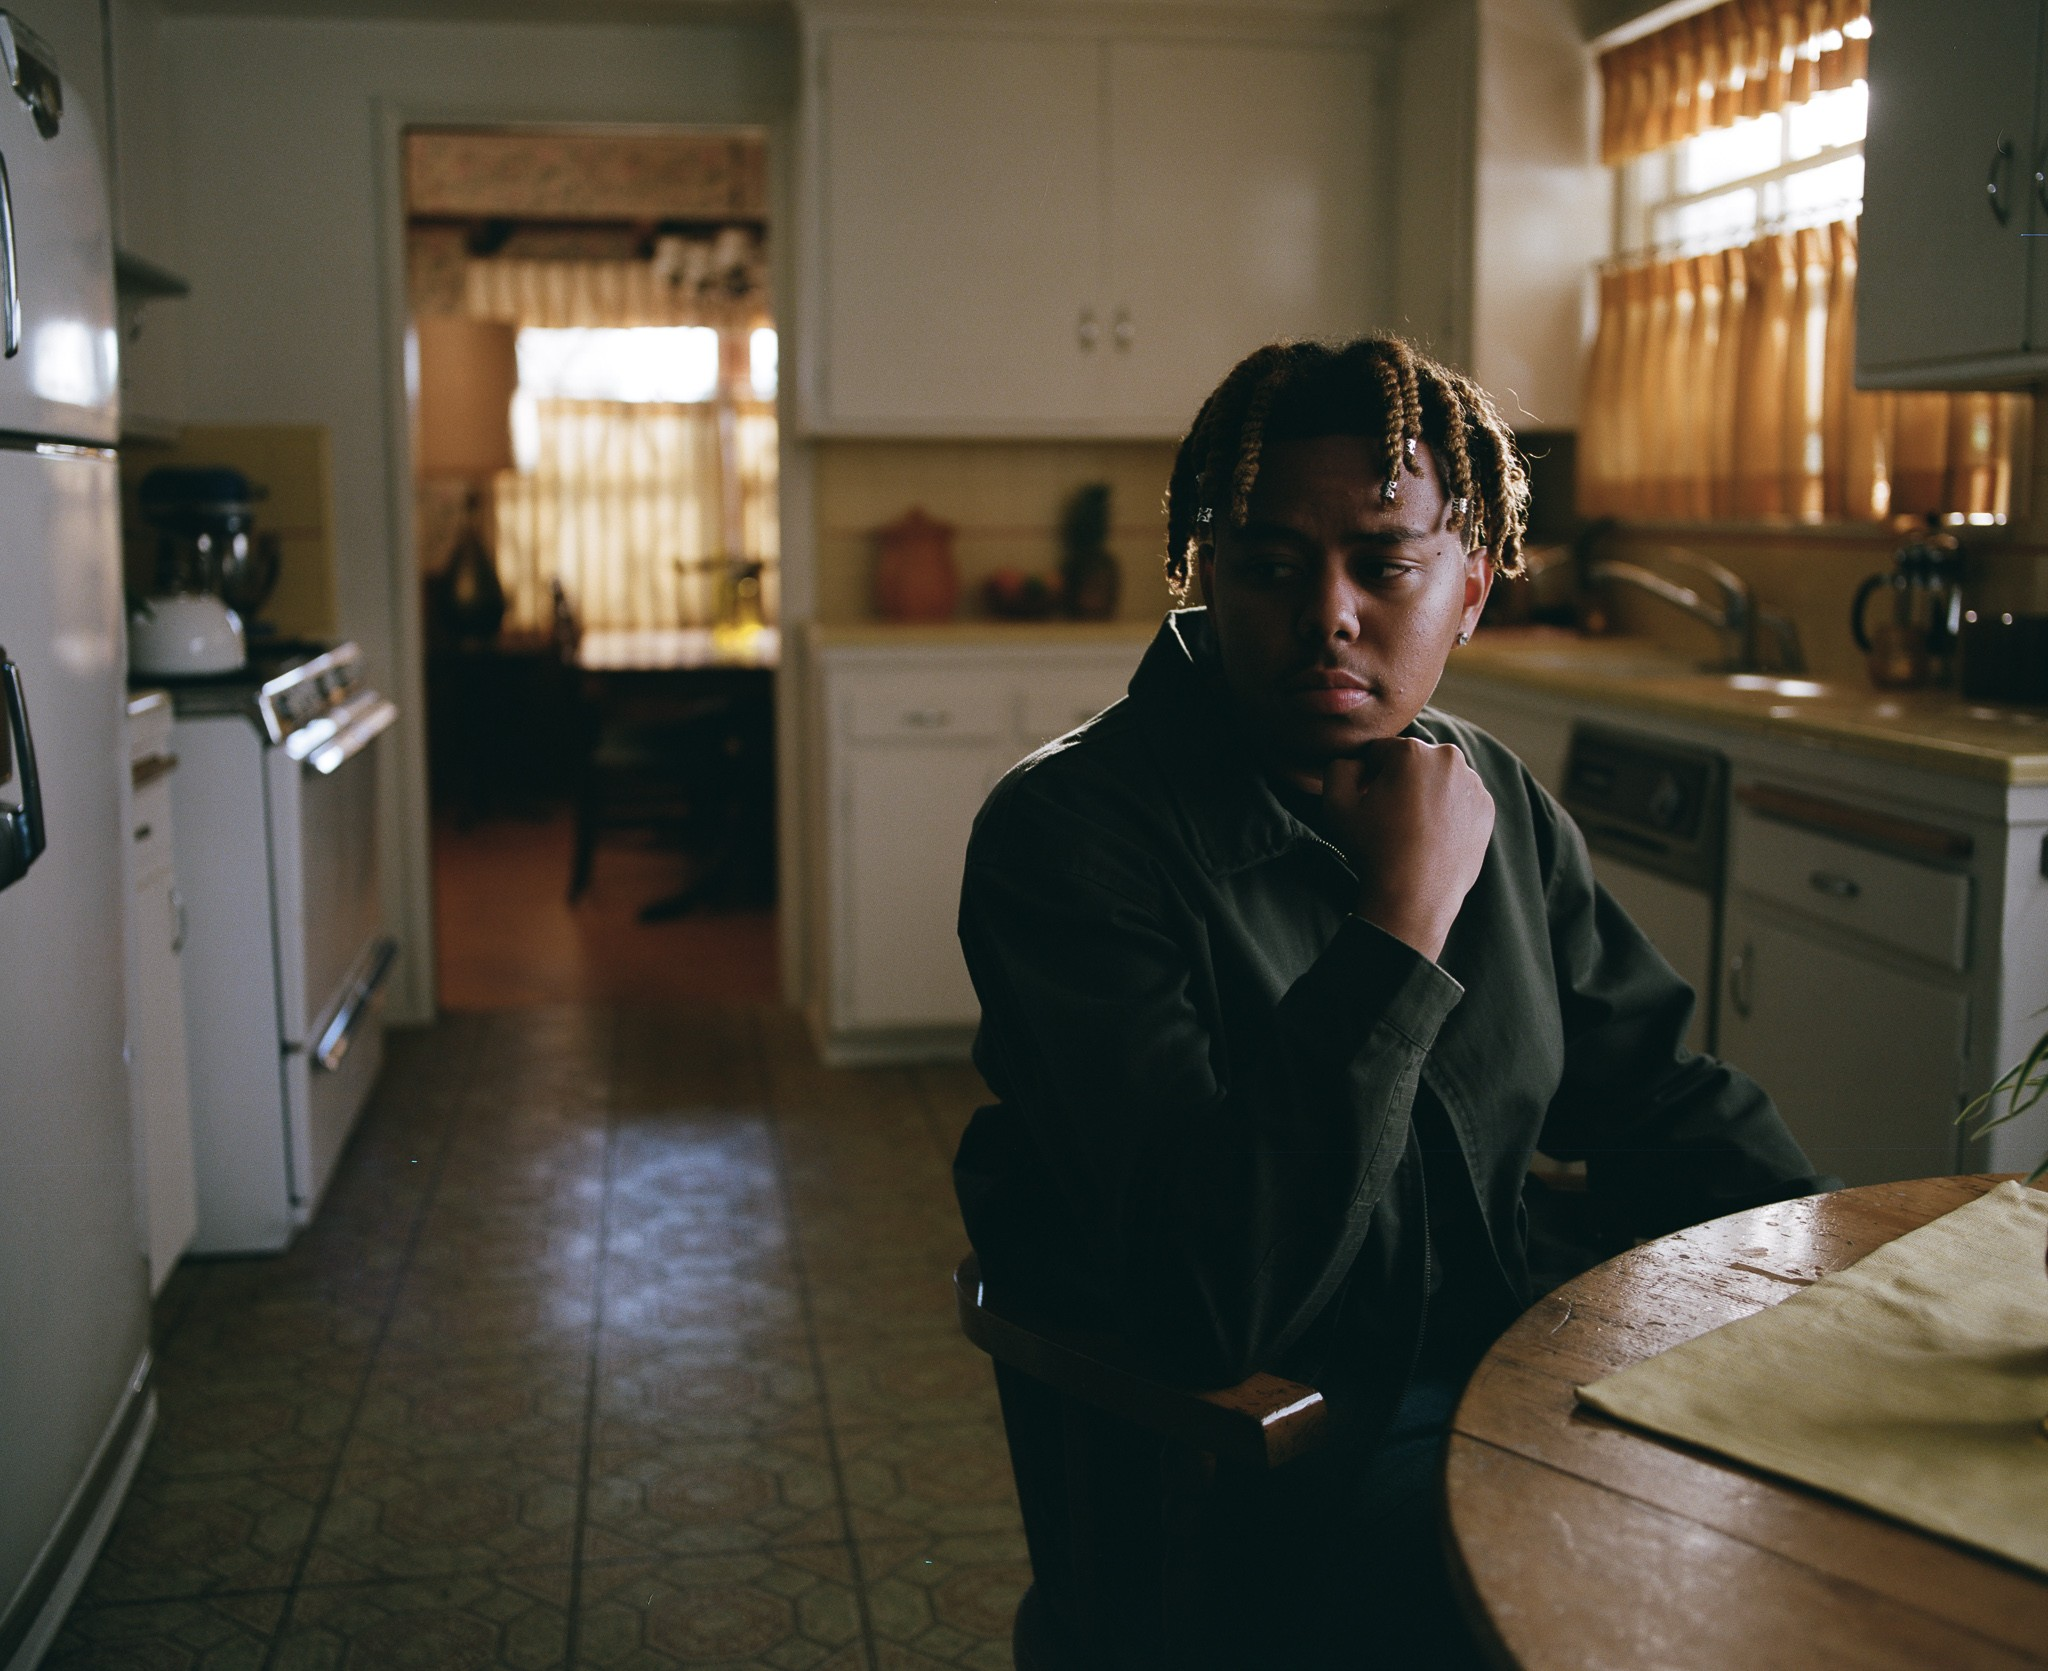 With a Pair of Grammy Nominations in His Rearview, Cordae's Focus is Longevity